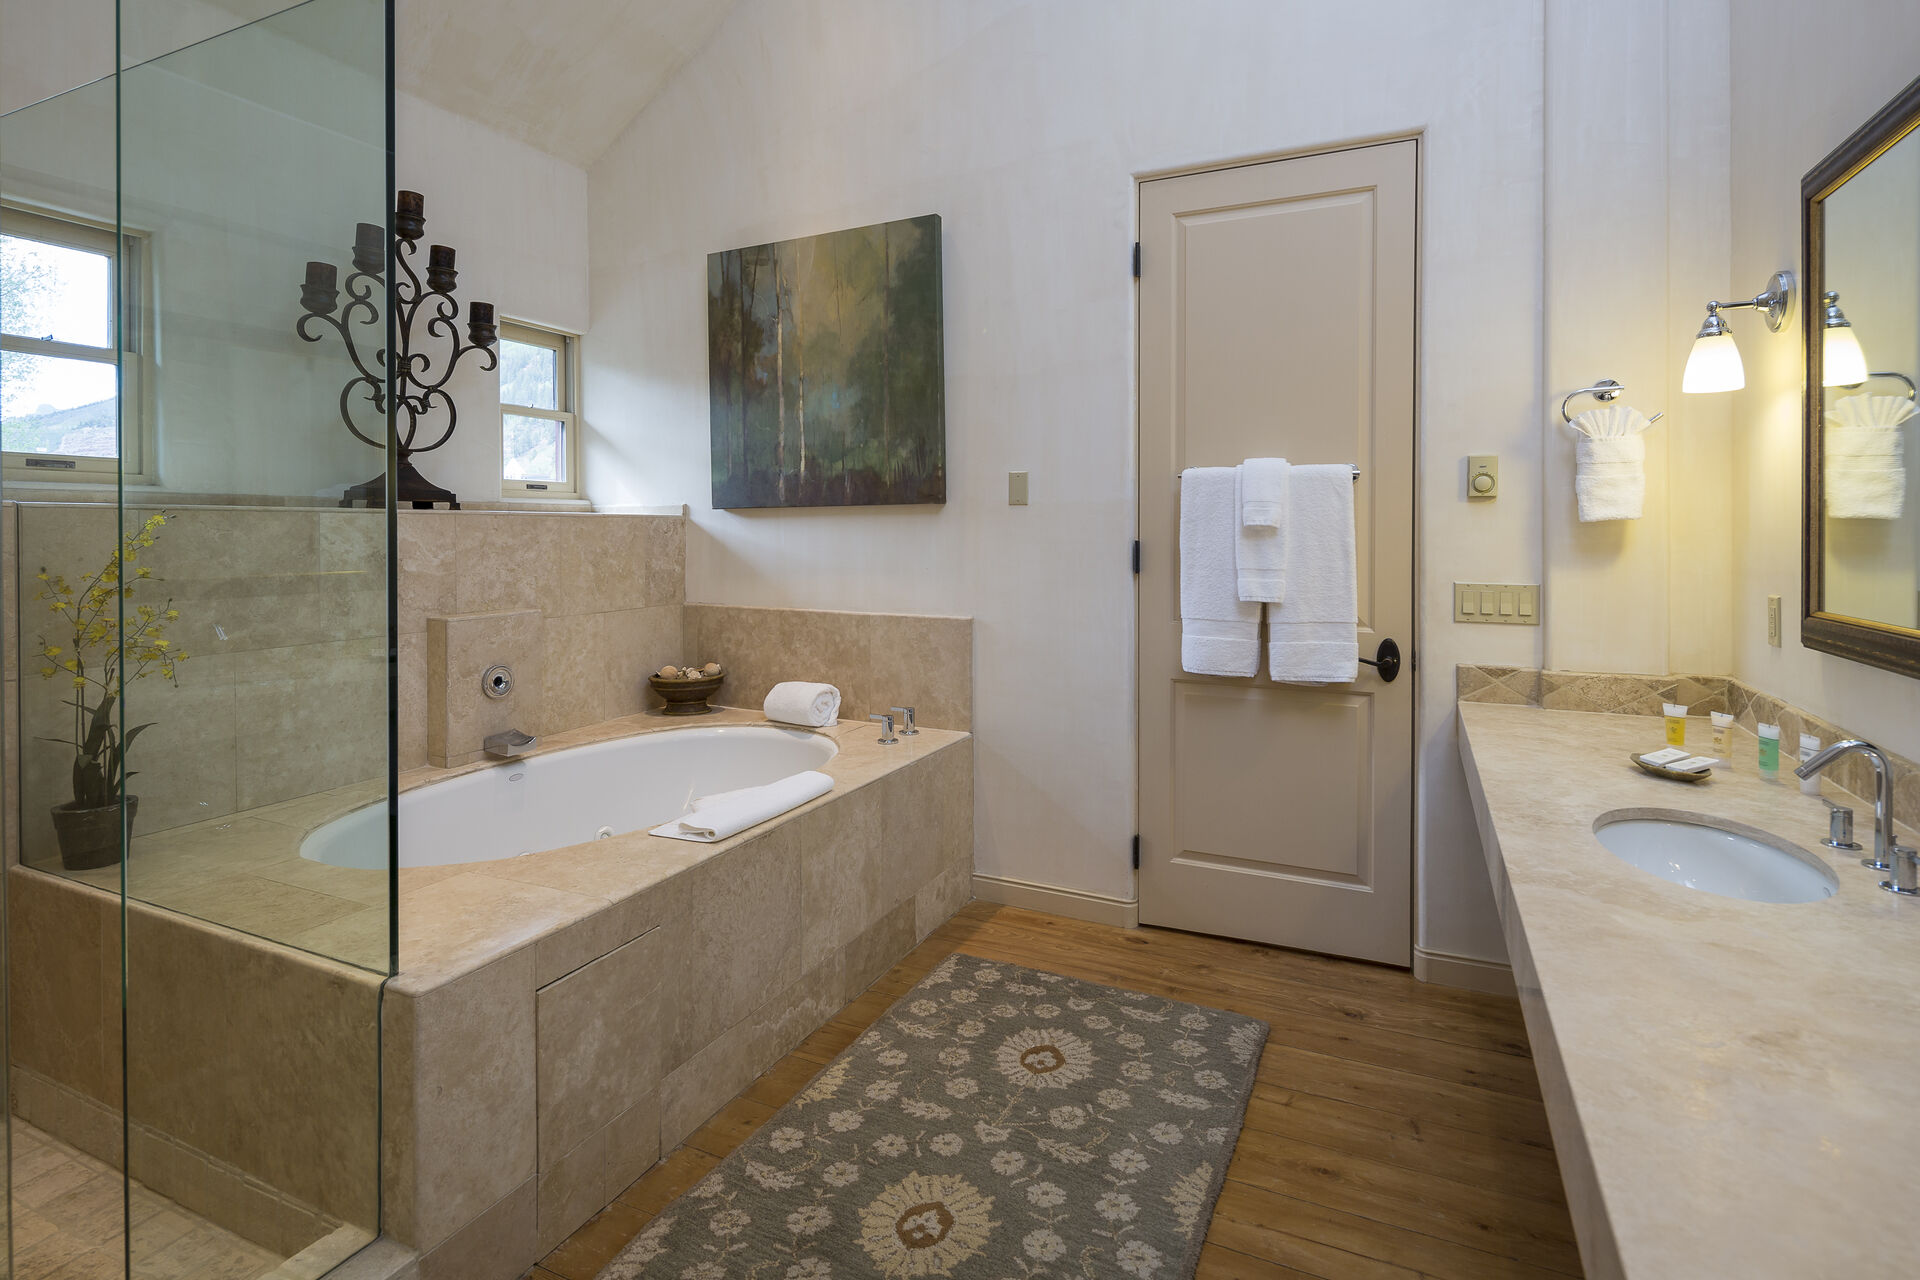 Bathroom of this Colorado Mountain vacation rental, with walk-in shower, a spa tub, and vanity sink.